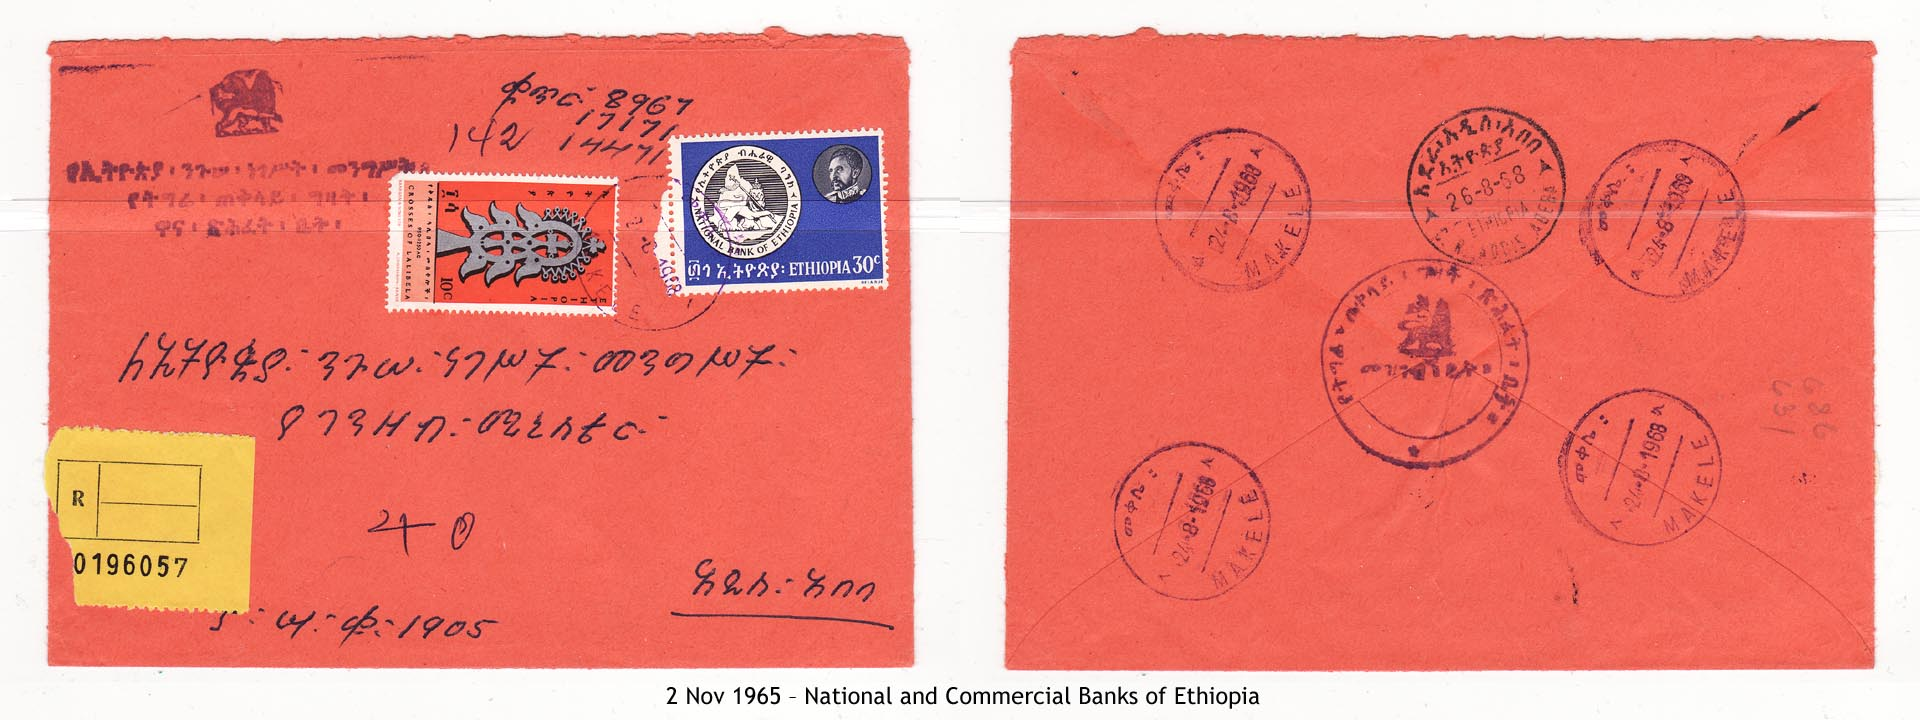 19651102 – National and Commercial Banks of Ethiopia